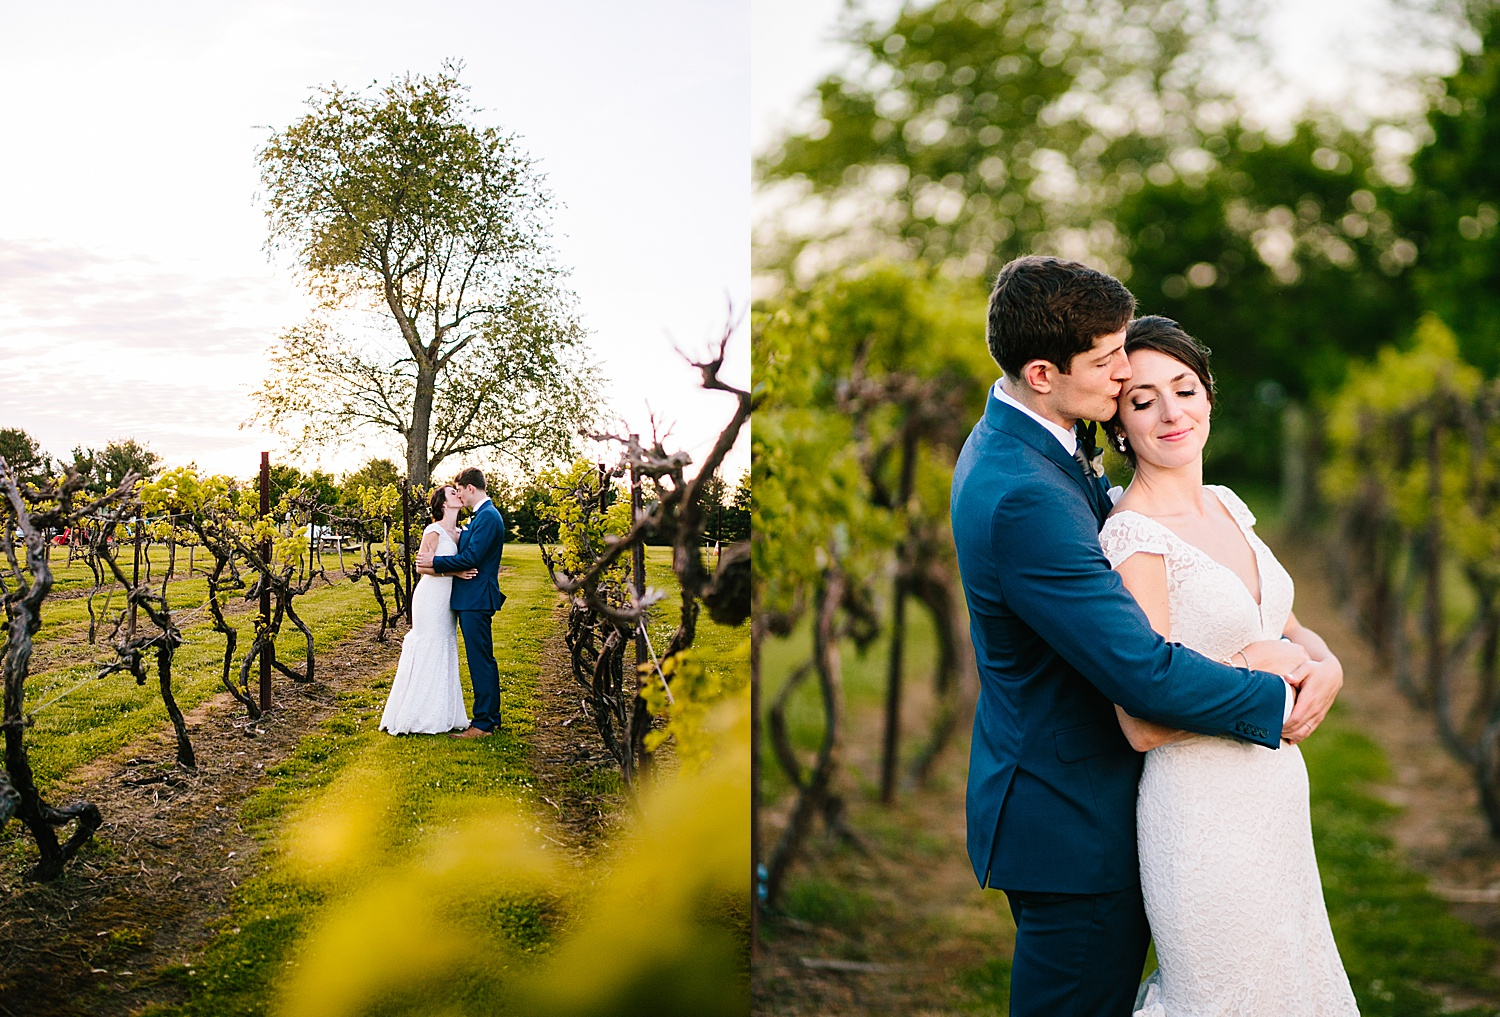 emilyaustin_rosebank_winery_newhope_farm_wedding_image111.jpg